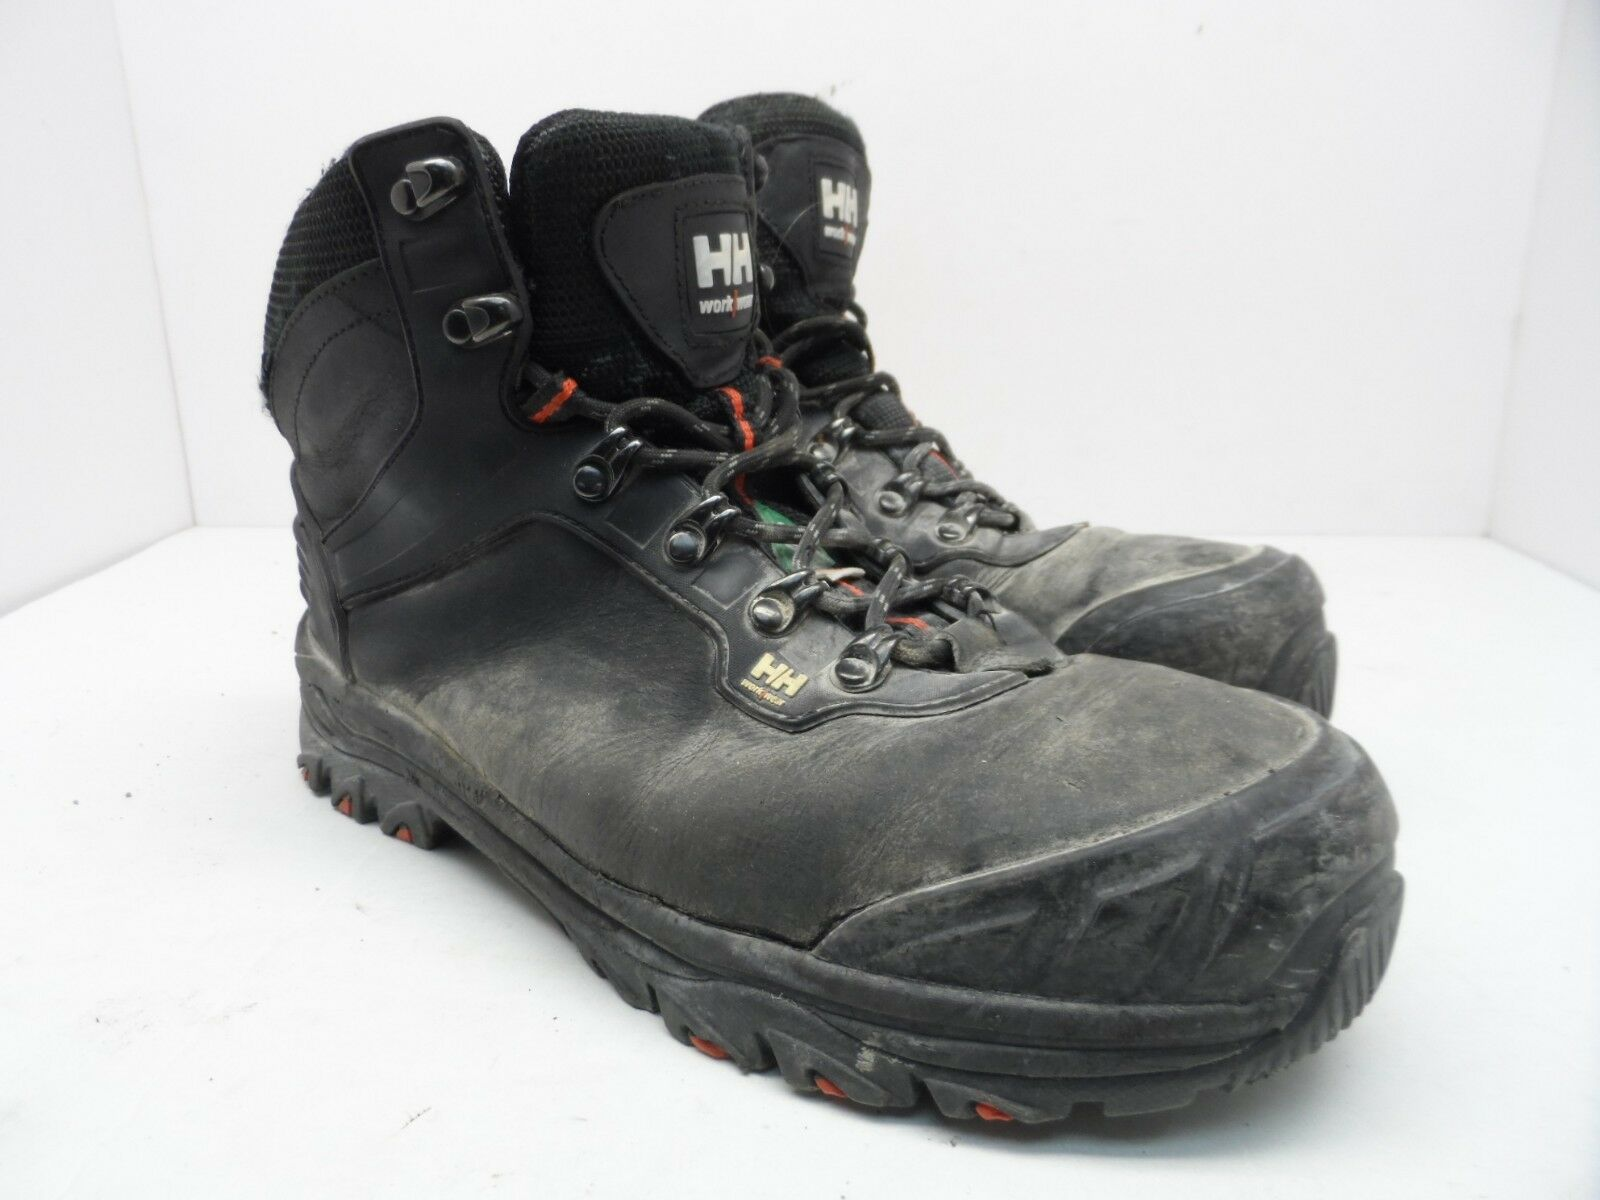 81110e4976 HELLY HANSEN Men s Composite Toe Composite Plate Leather Work Work Work  Boots Black 7.5M b1b855